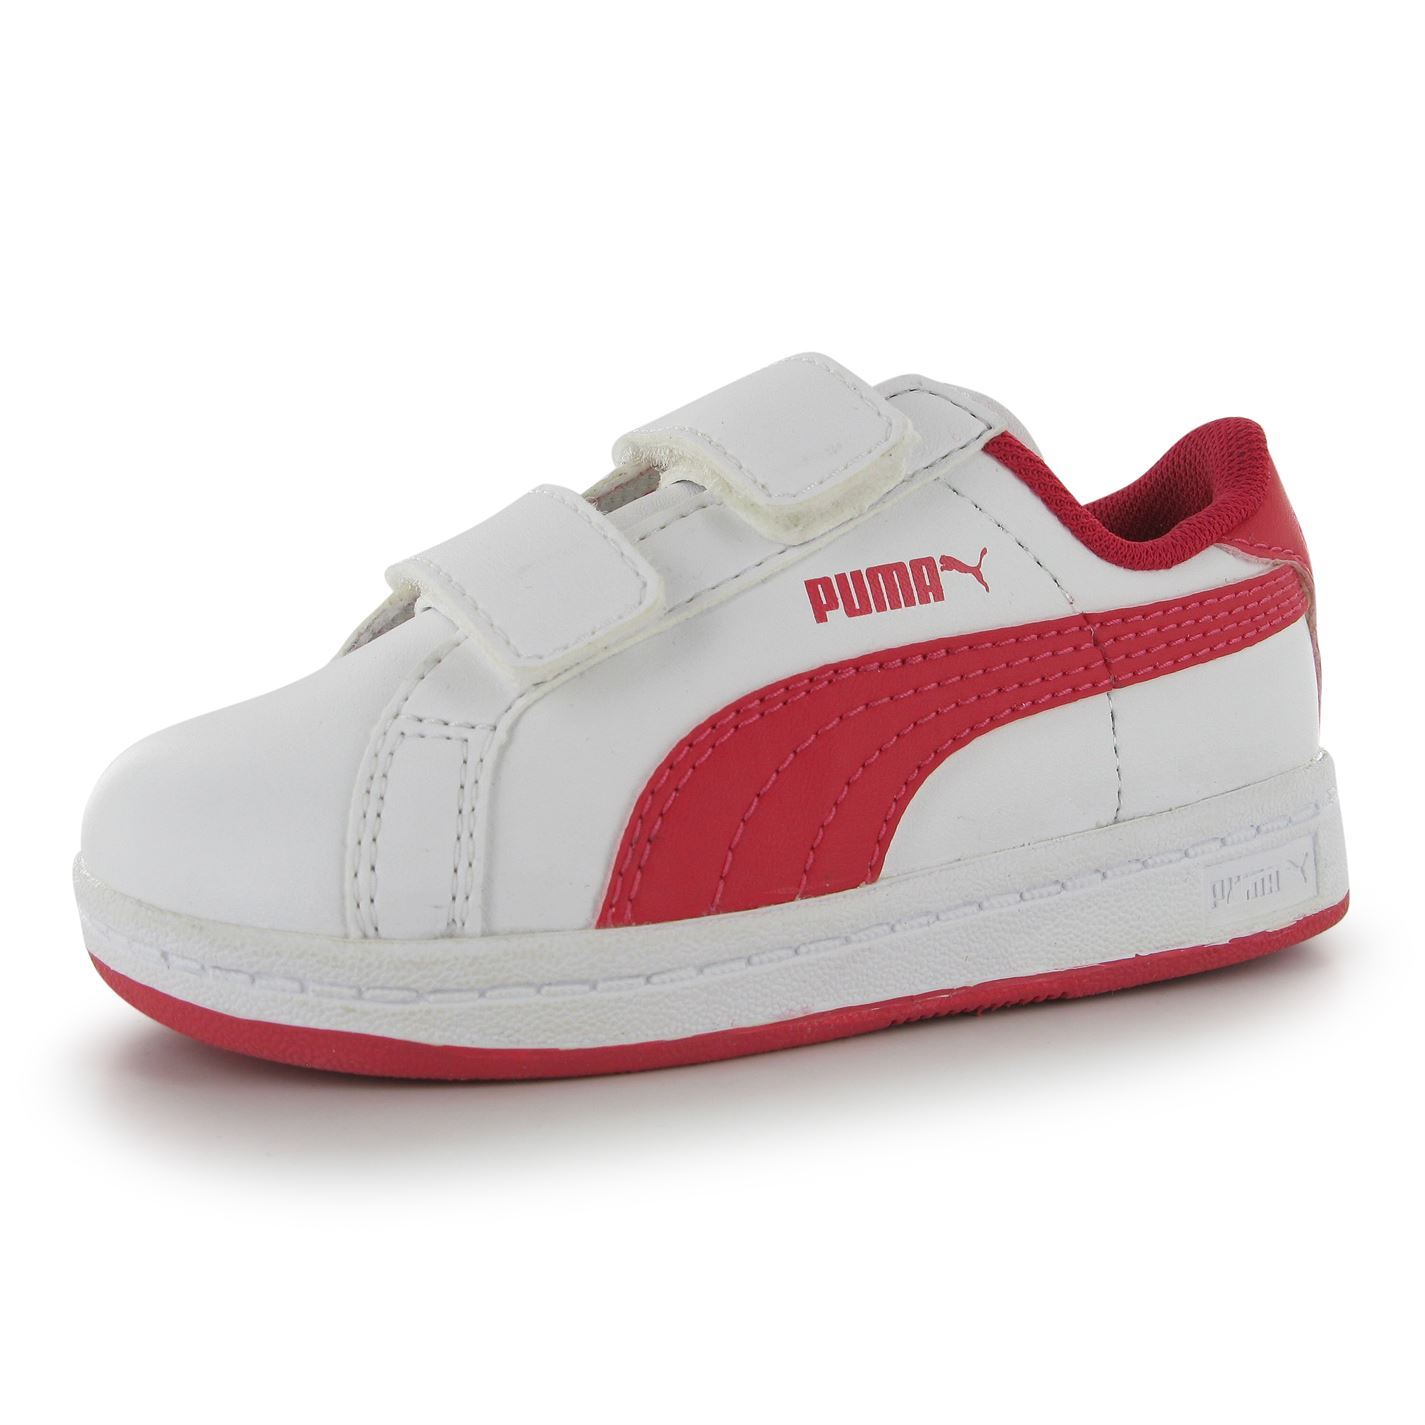 Puma Children S Shoes Sport Direct